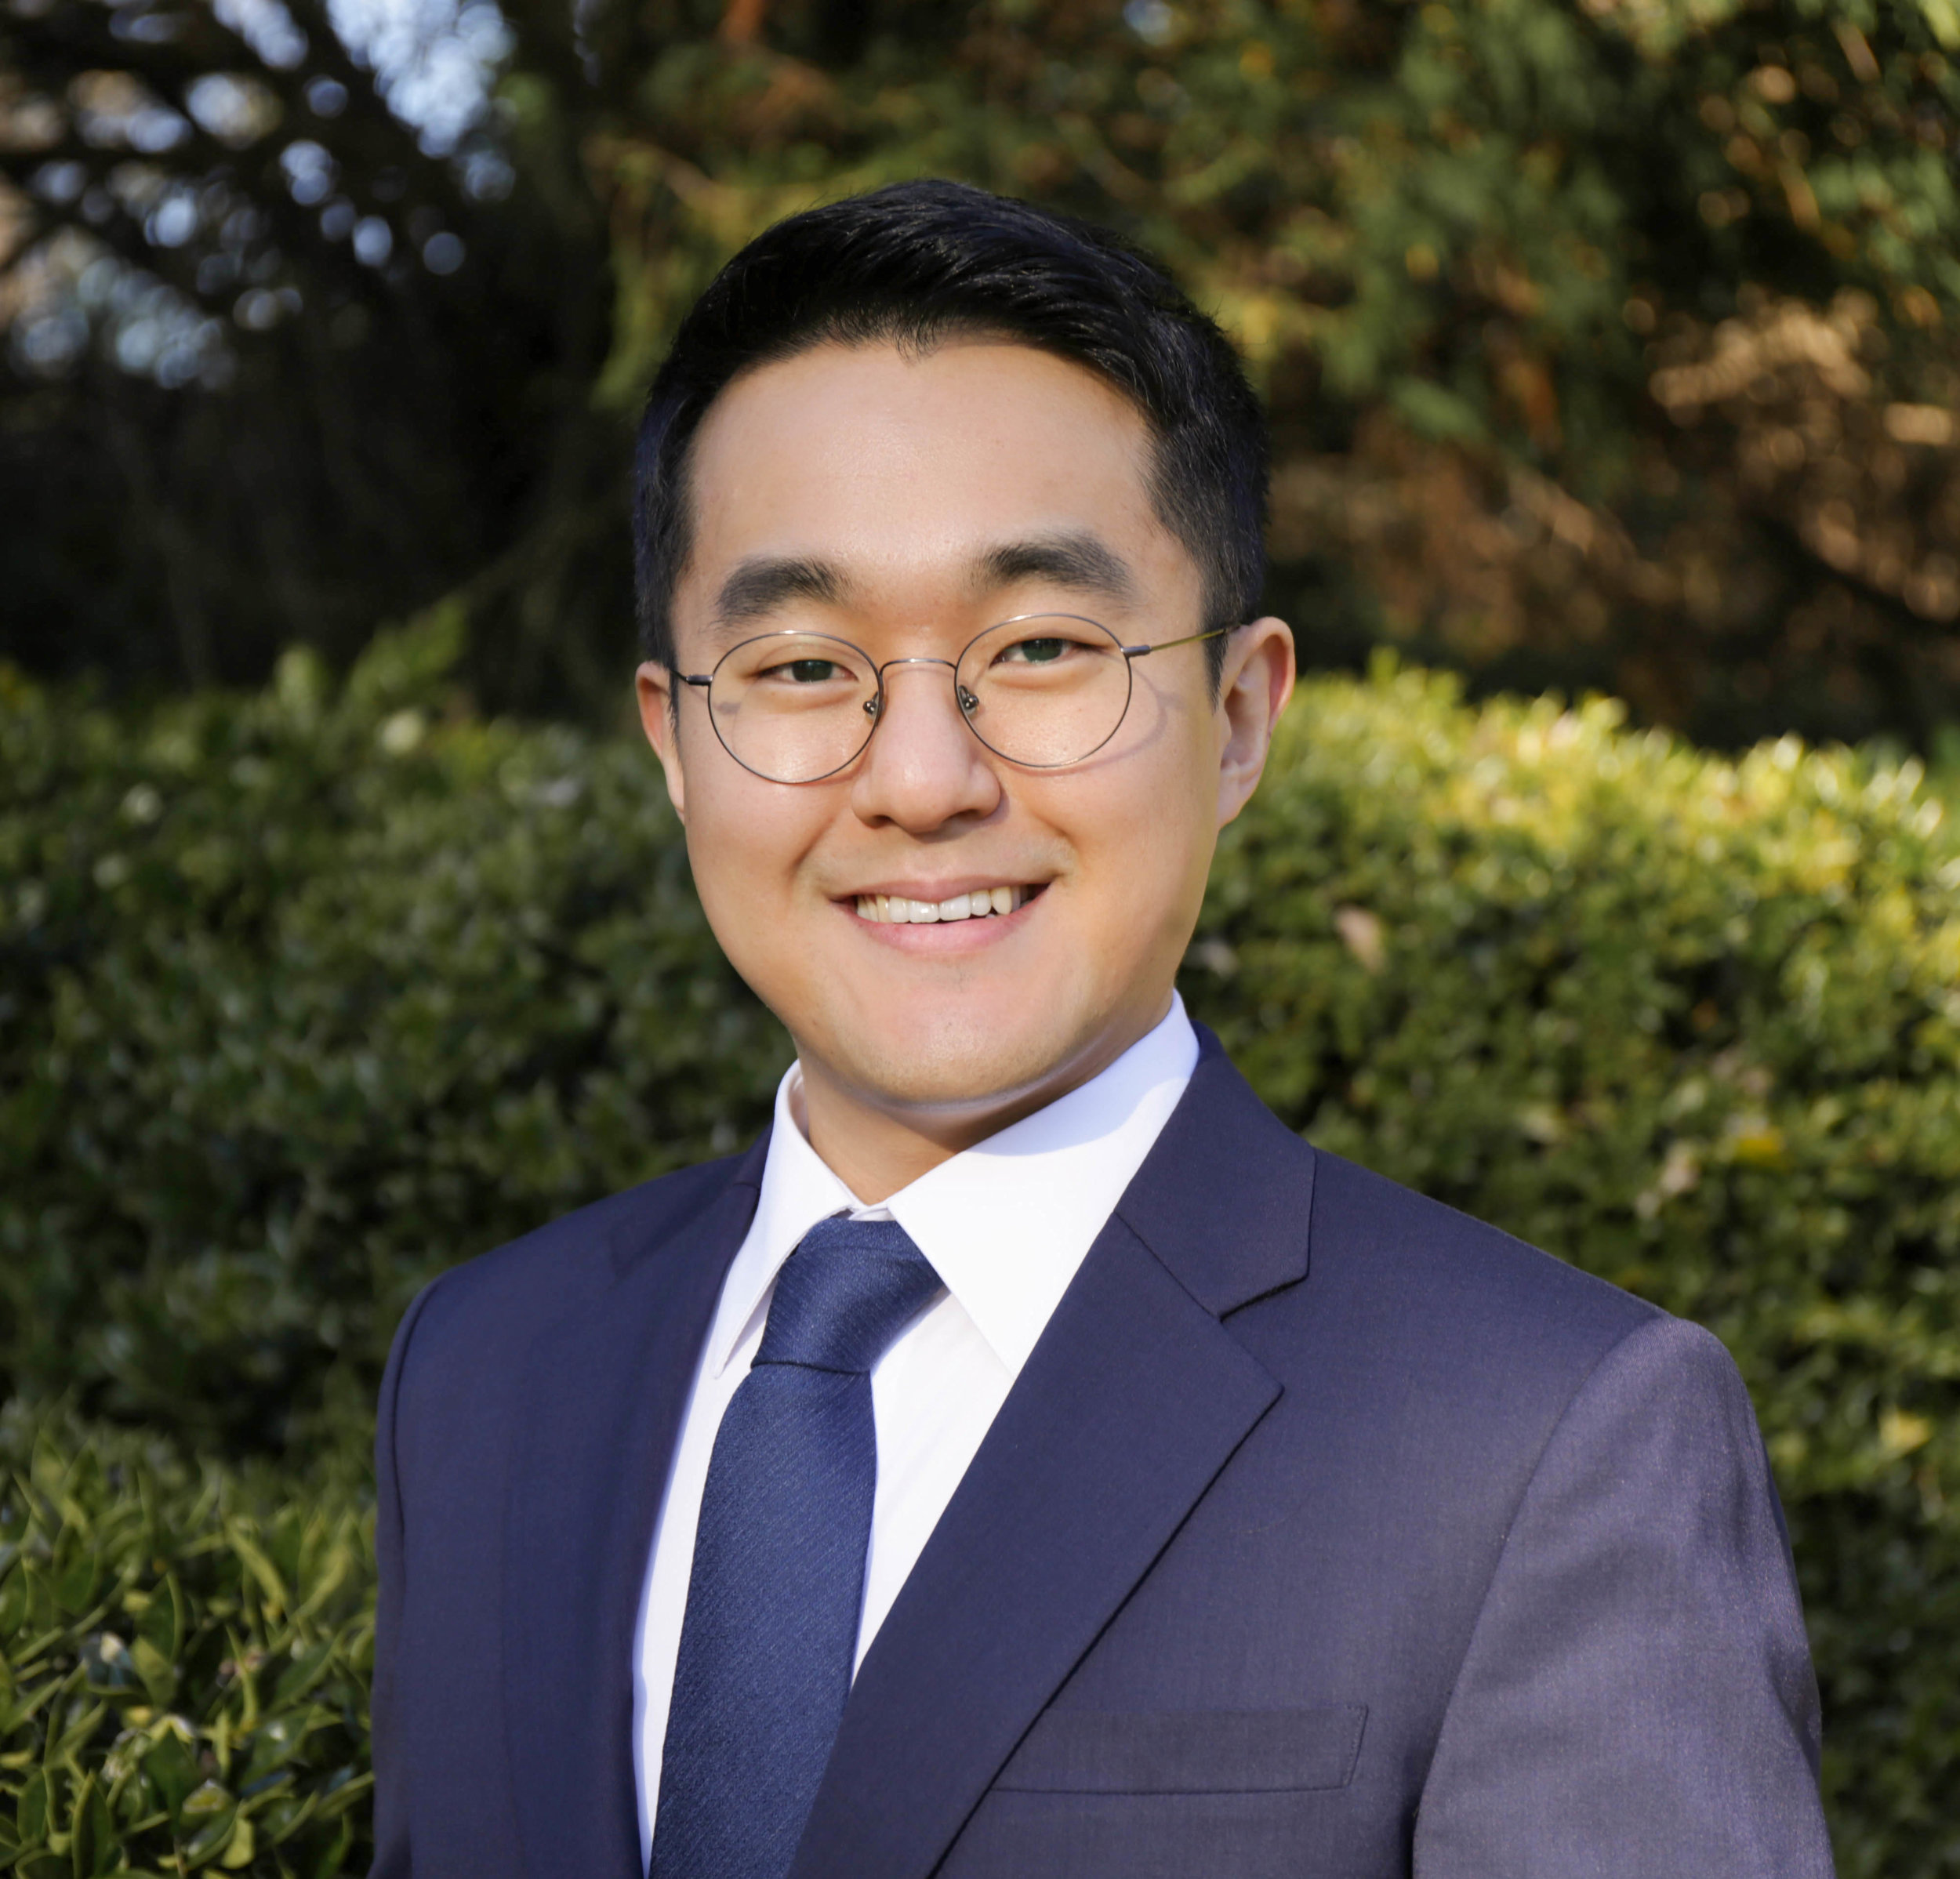 David Kim, Vice President of Communications - David is originally from Seoul, Korea. He majored in psychology at Sogang University. At Duke, David is pursuing a joint degree of JD/LLM in International and Comparative Law. He enjoys playing basketball, watching NBA, and playing games.Other engagement: Veterans Assistance Project1L Summer: Judicial Intern for the Hon. Robert T. Numbers II, United States District Court, Eastern District of North Carolina; Duke-Leiden Institute in Global and Transnational Law